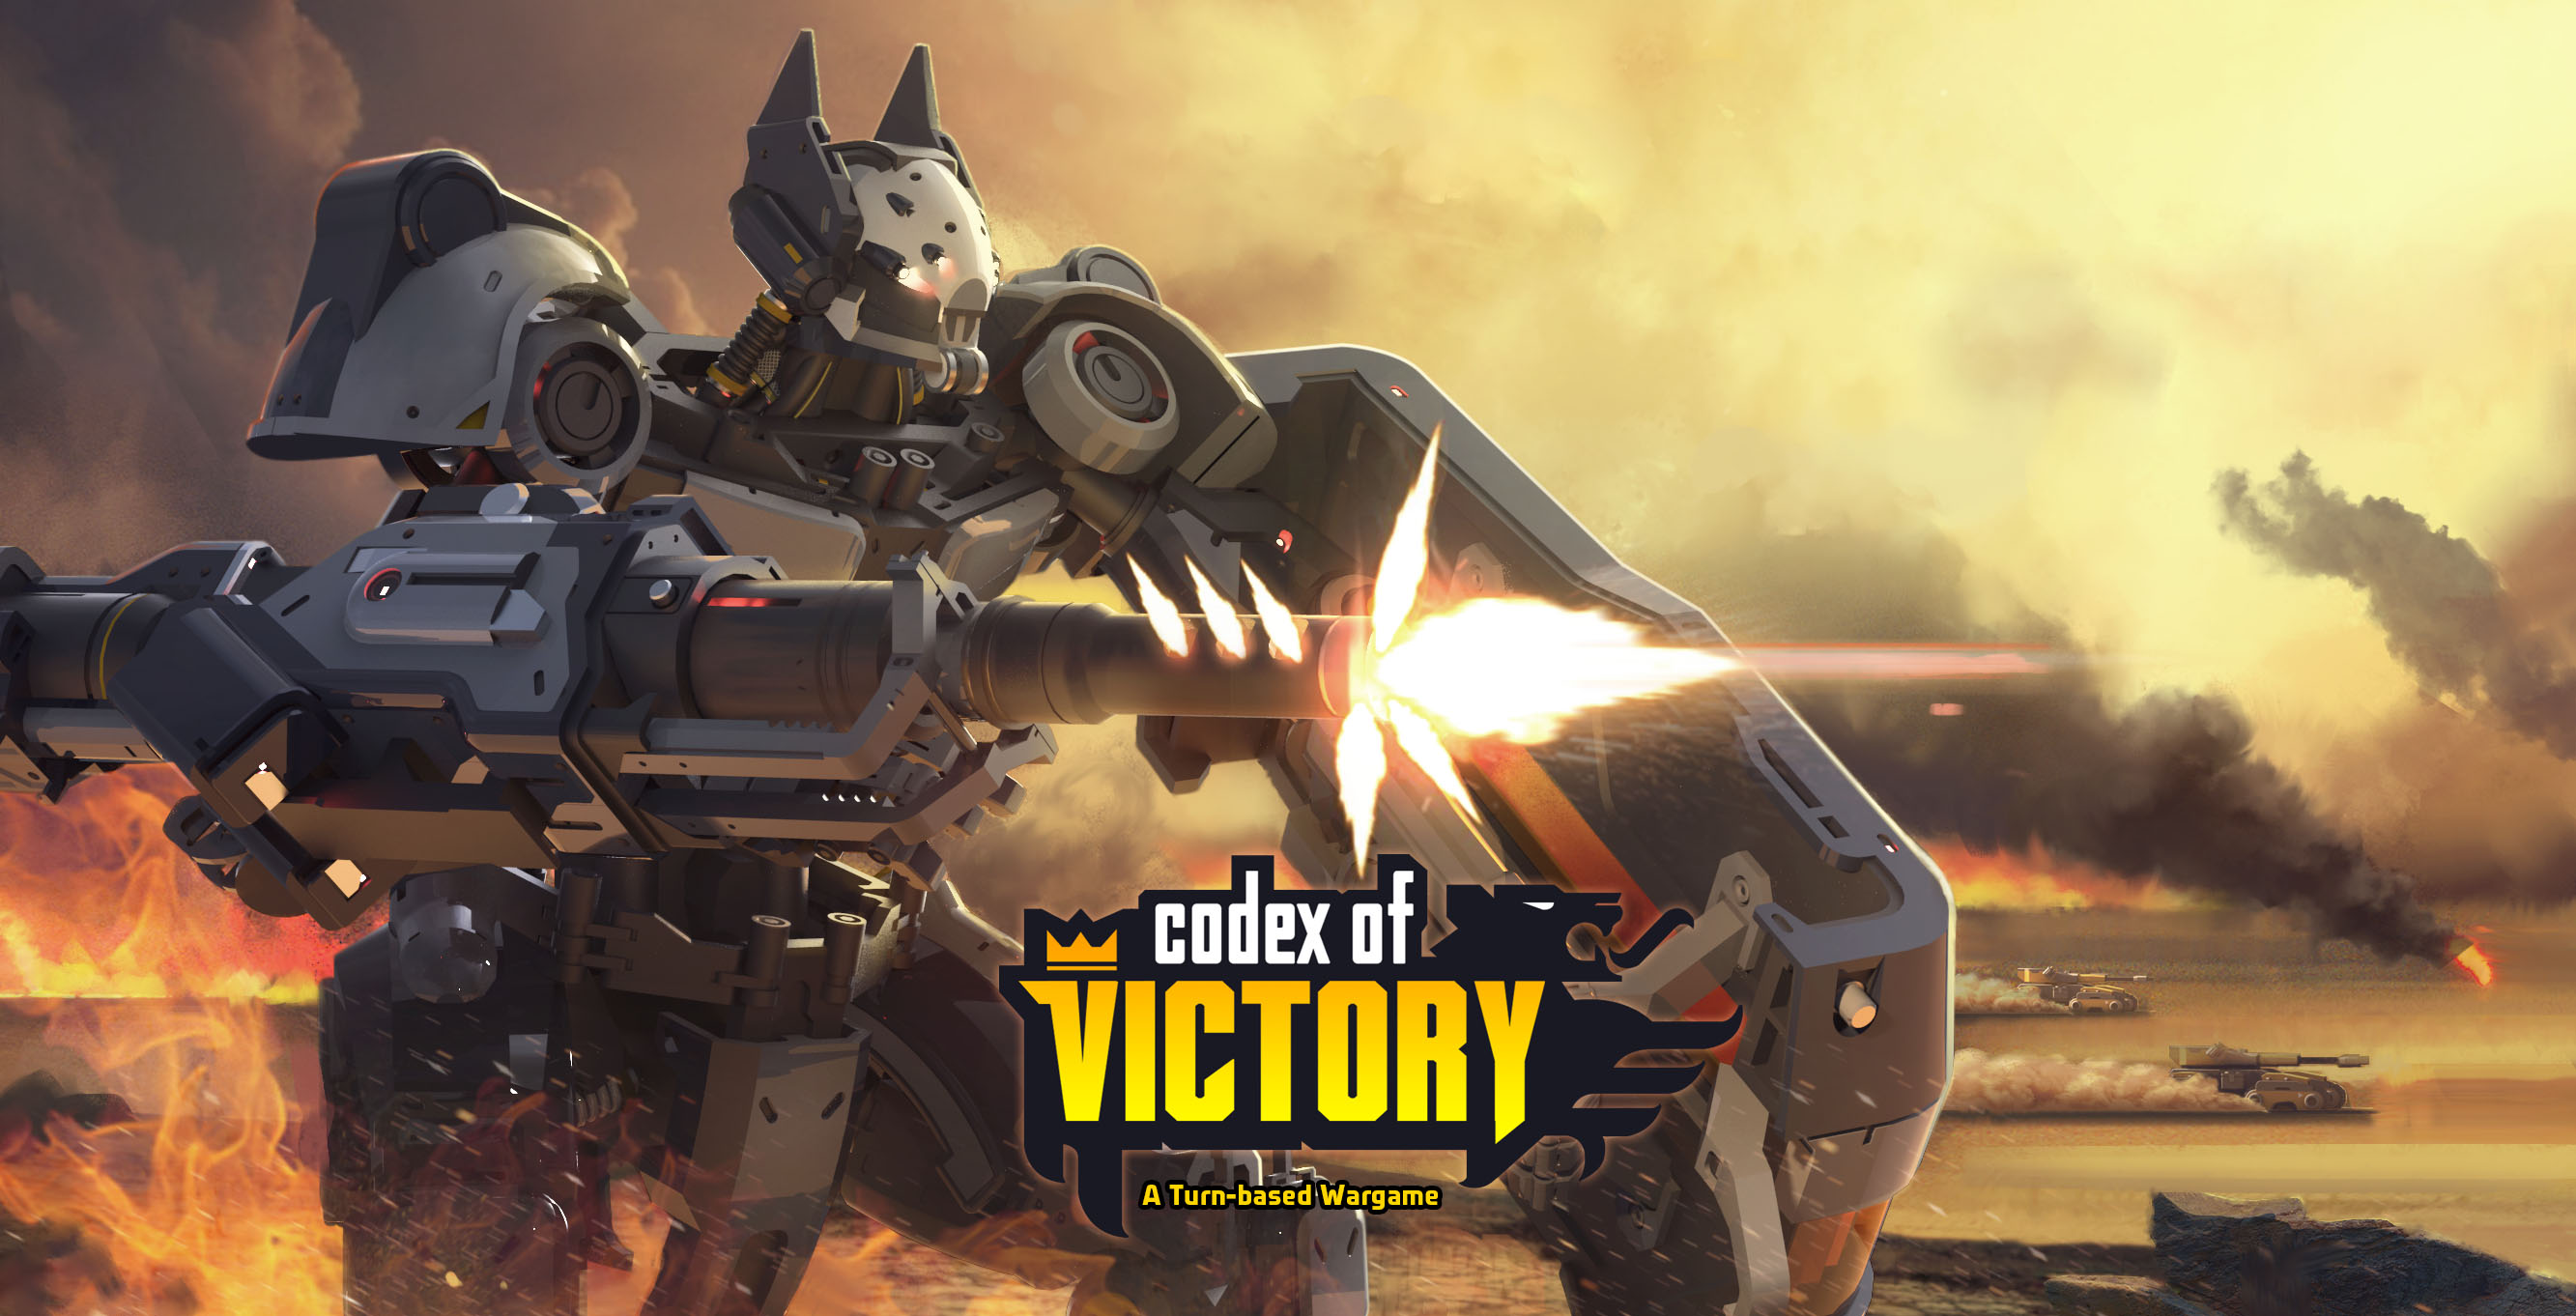 Codex of Victory — A turn-based wargame